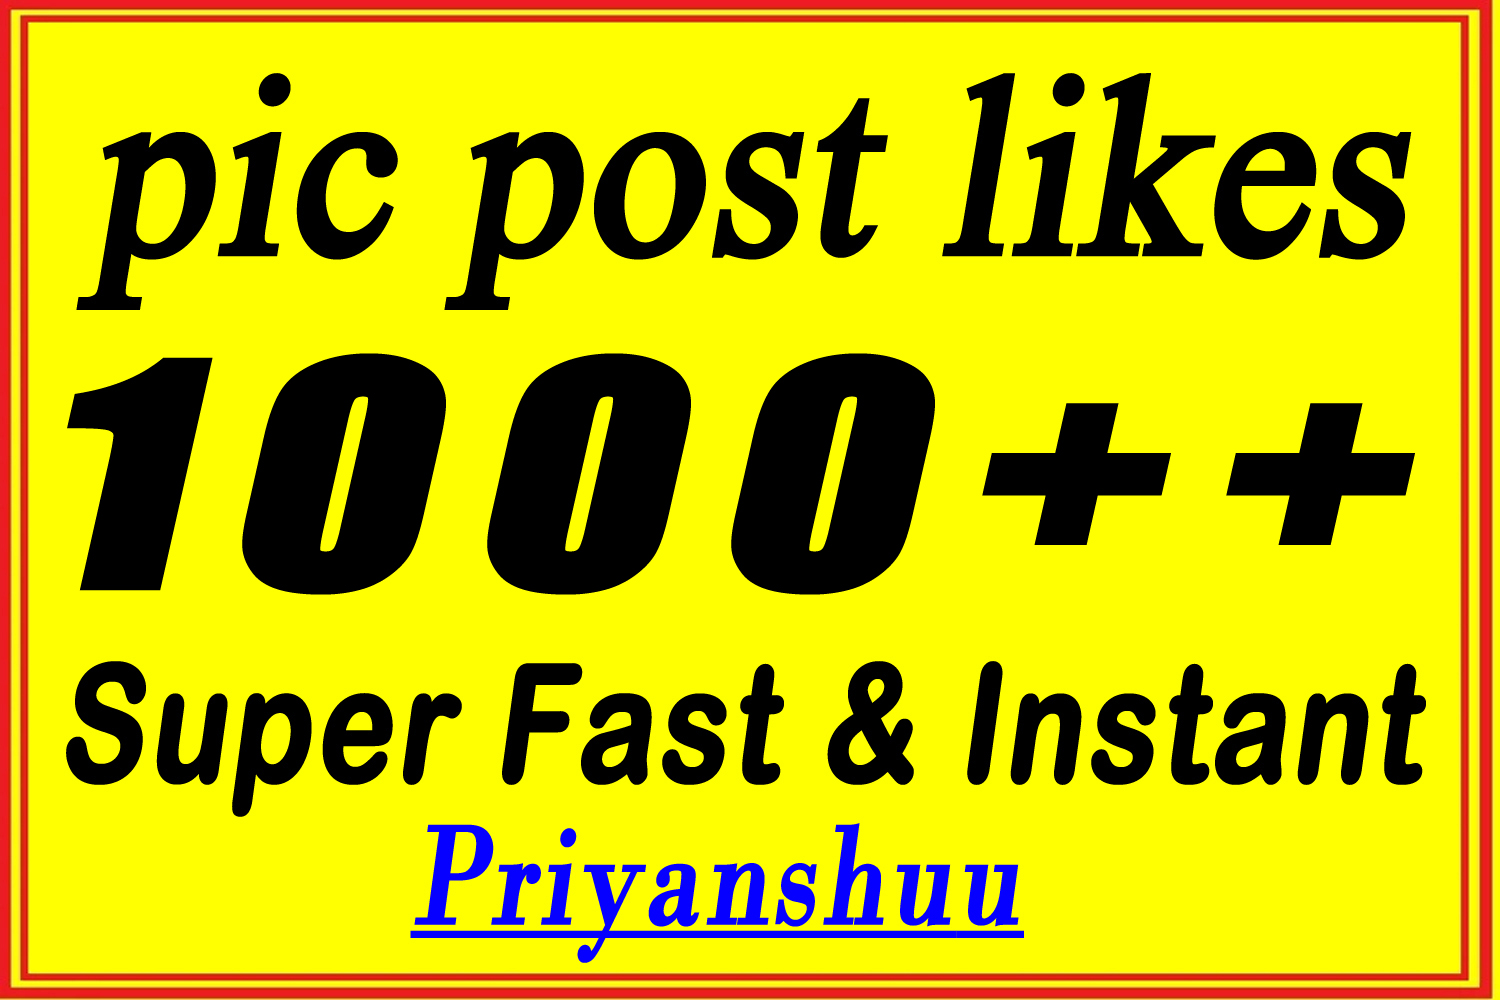 instant 1000 to 1200 picture post promotion marketing in 4 hours